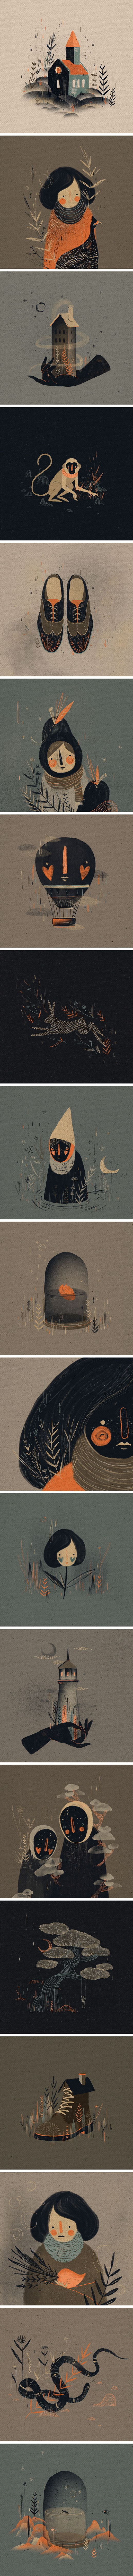 casinha. Illustration, warm colours, sweet, cute, pretty, Orange, Brown, black, blue